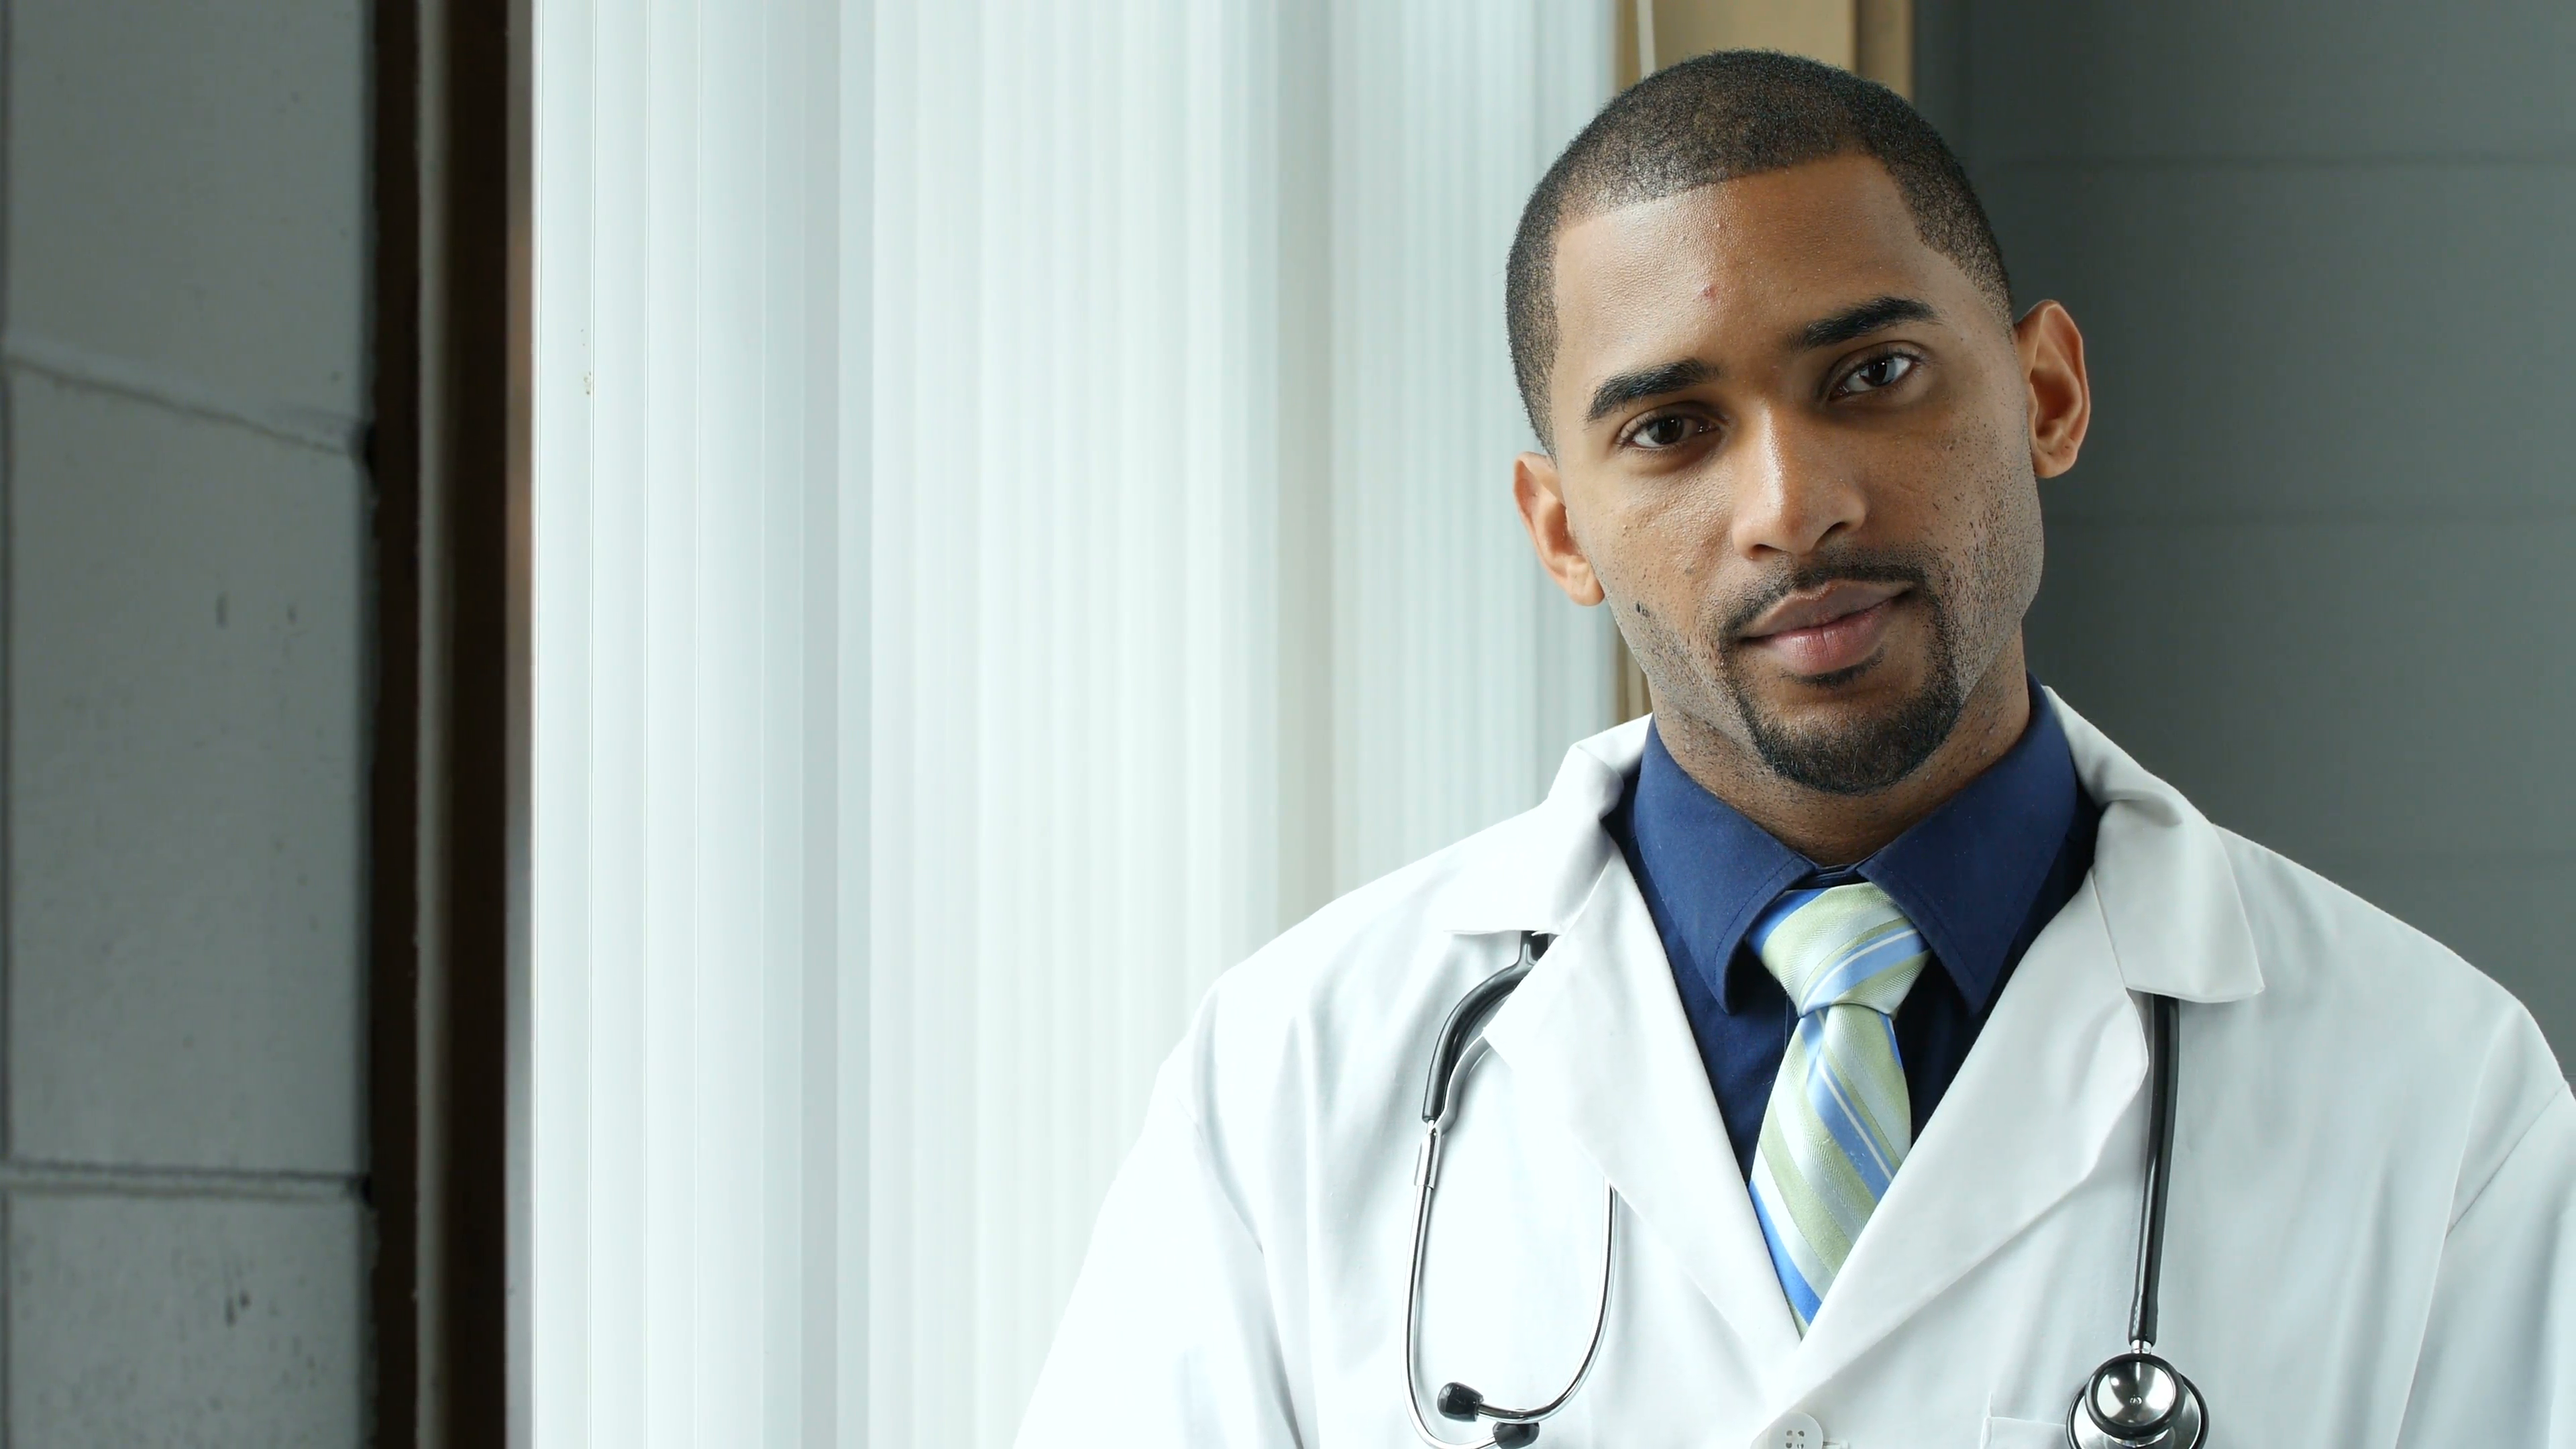 Portrait of a young black male doctor smiling 4yfnr igx  f0004 png